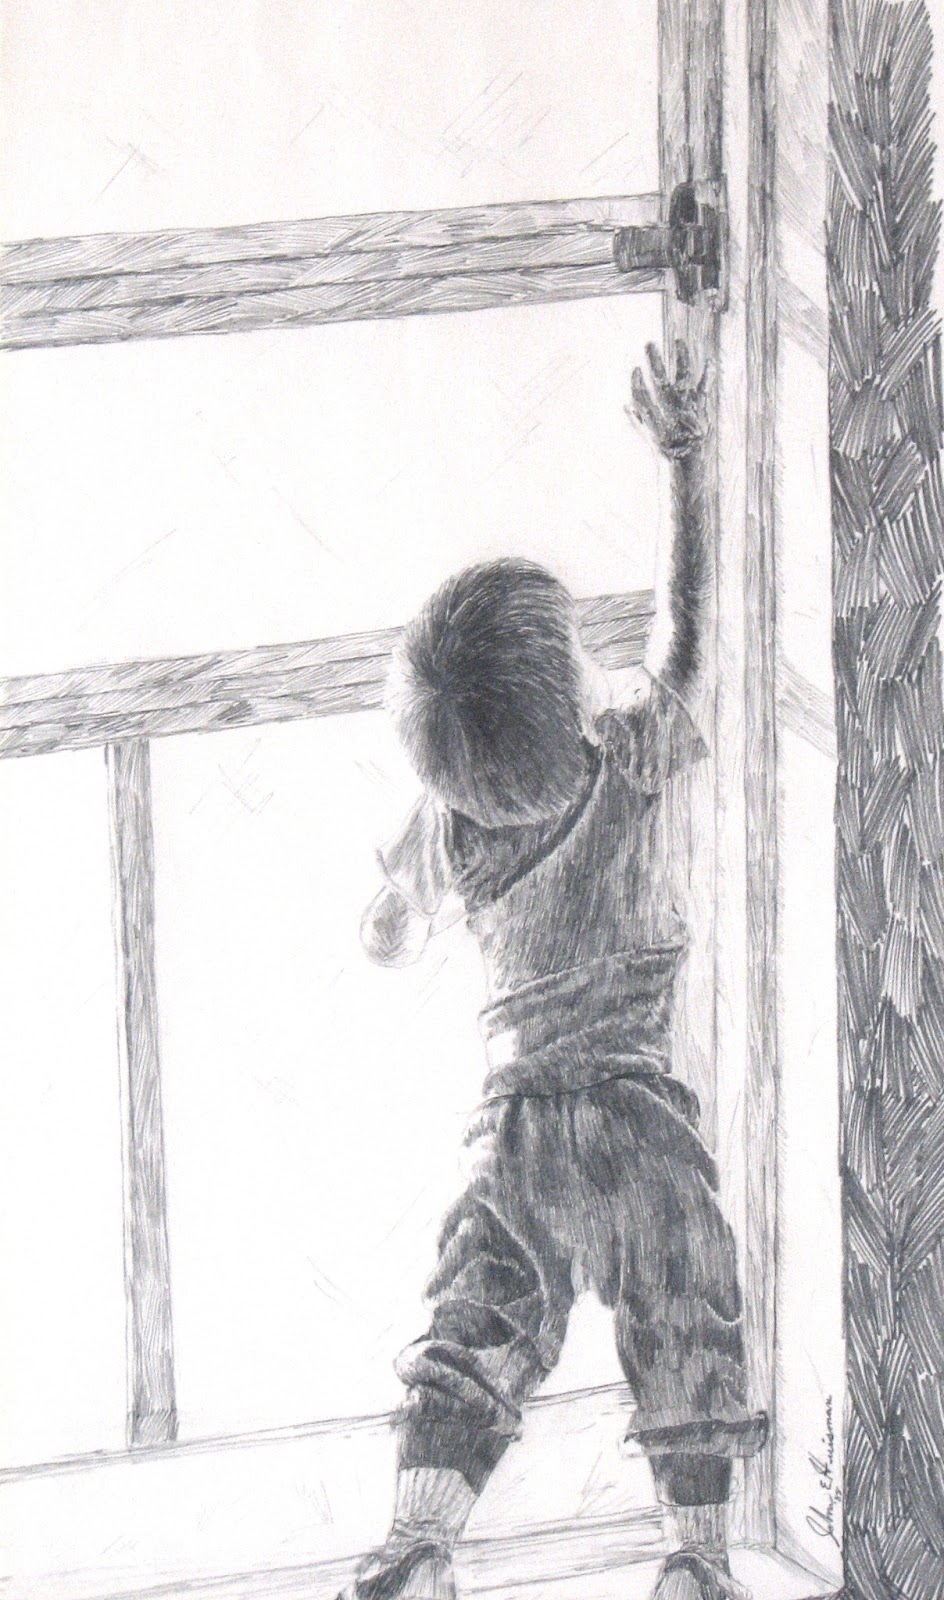 Door pencil drawing - Pencil Sketch On Paper Child Reaching By John Huisman Http